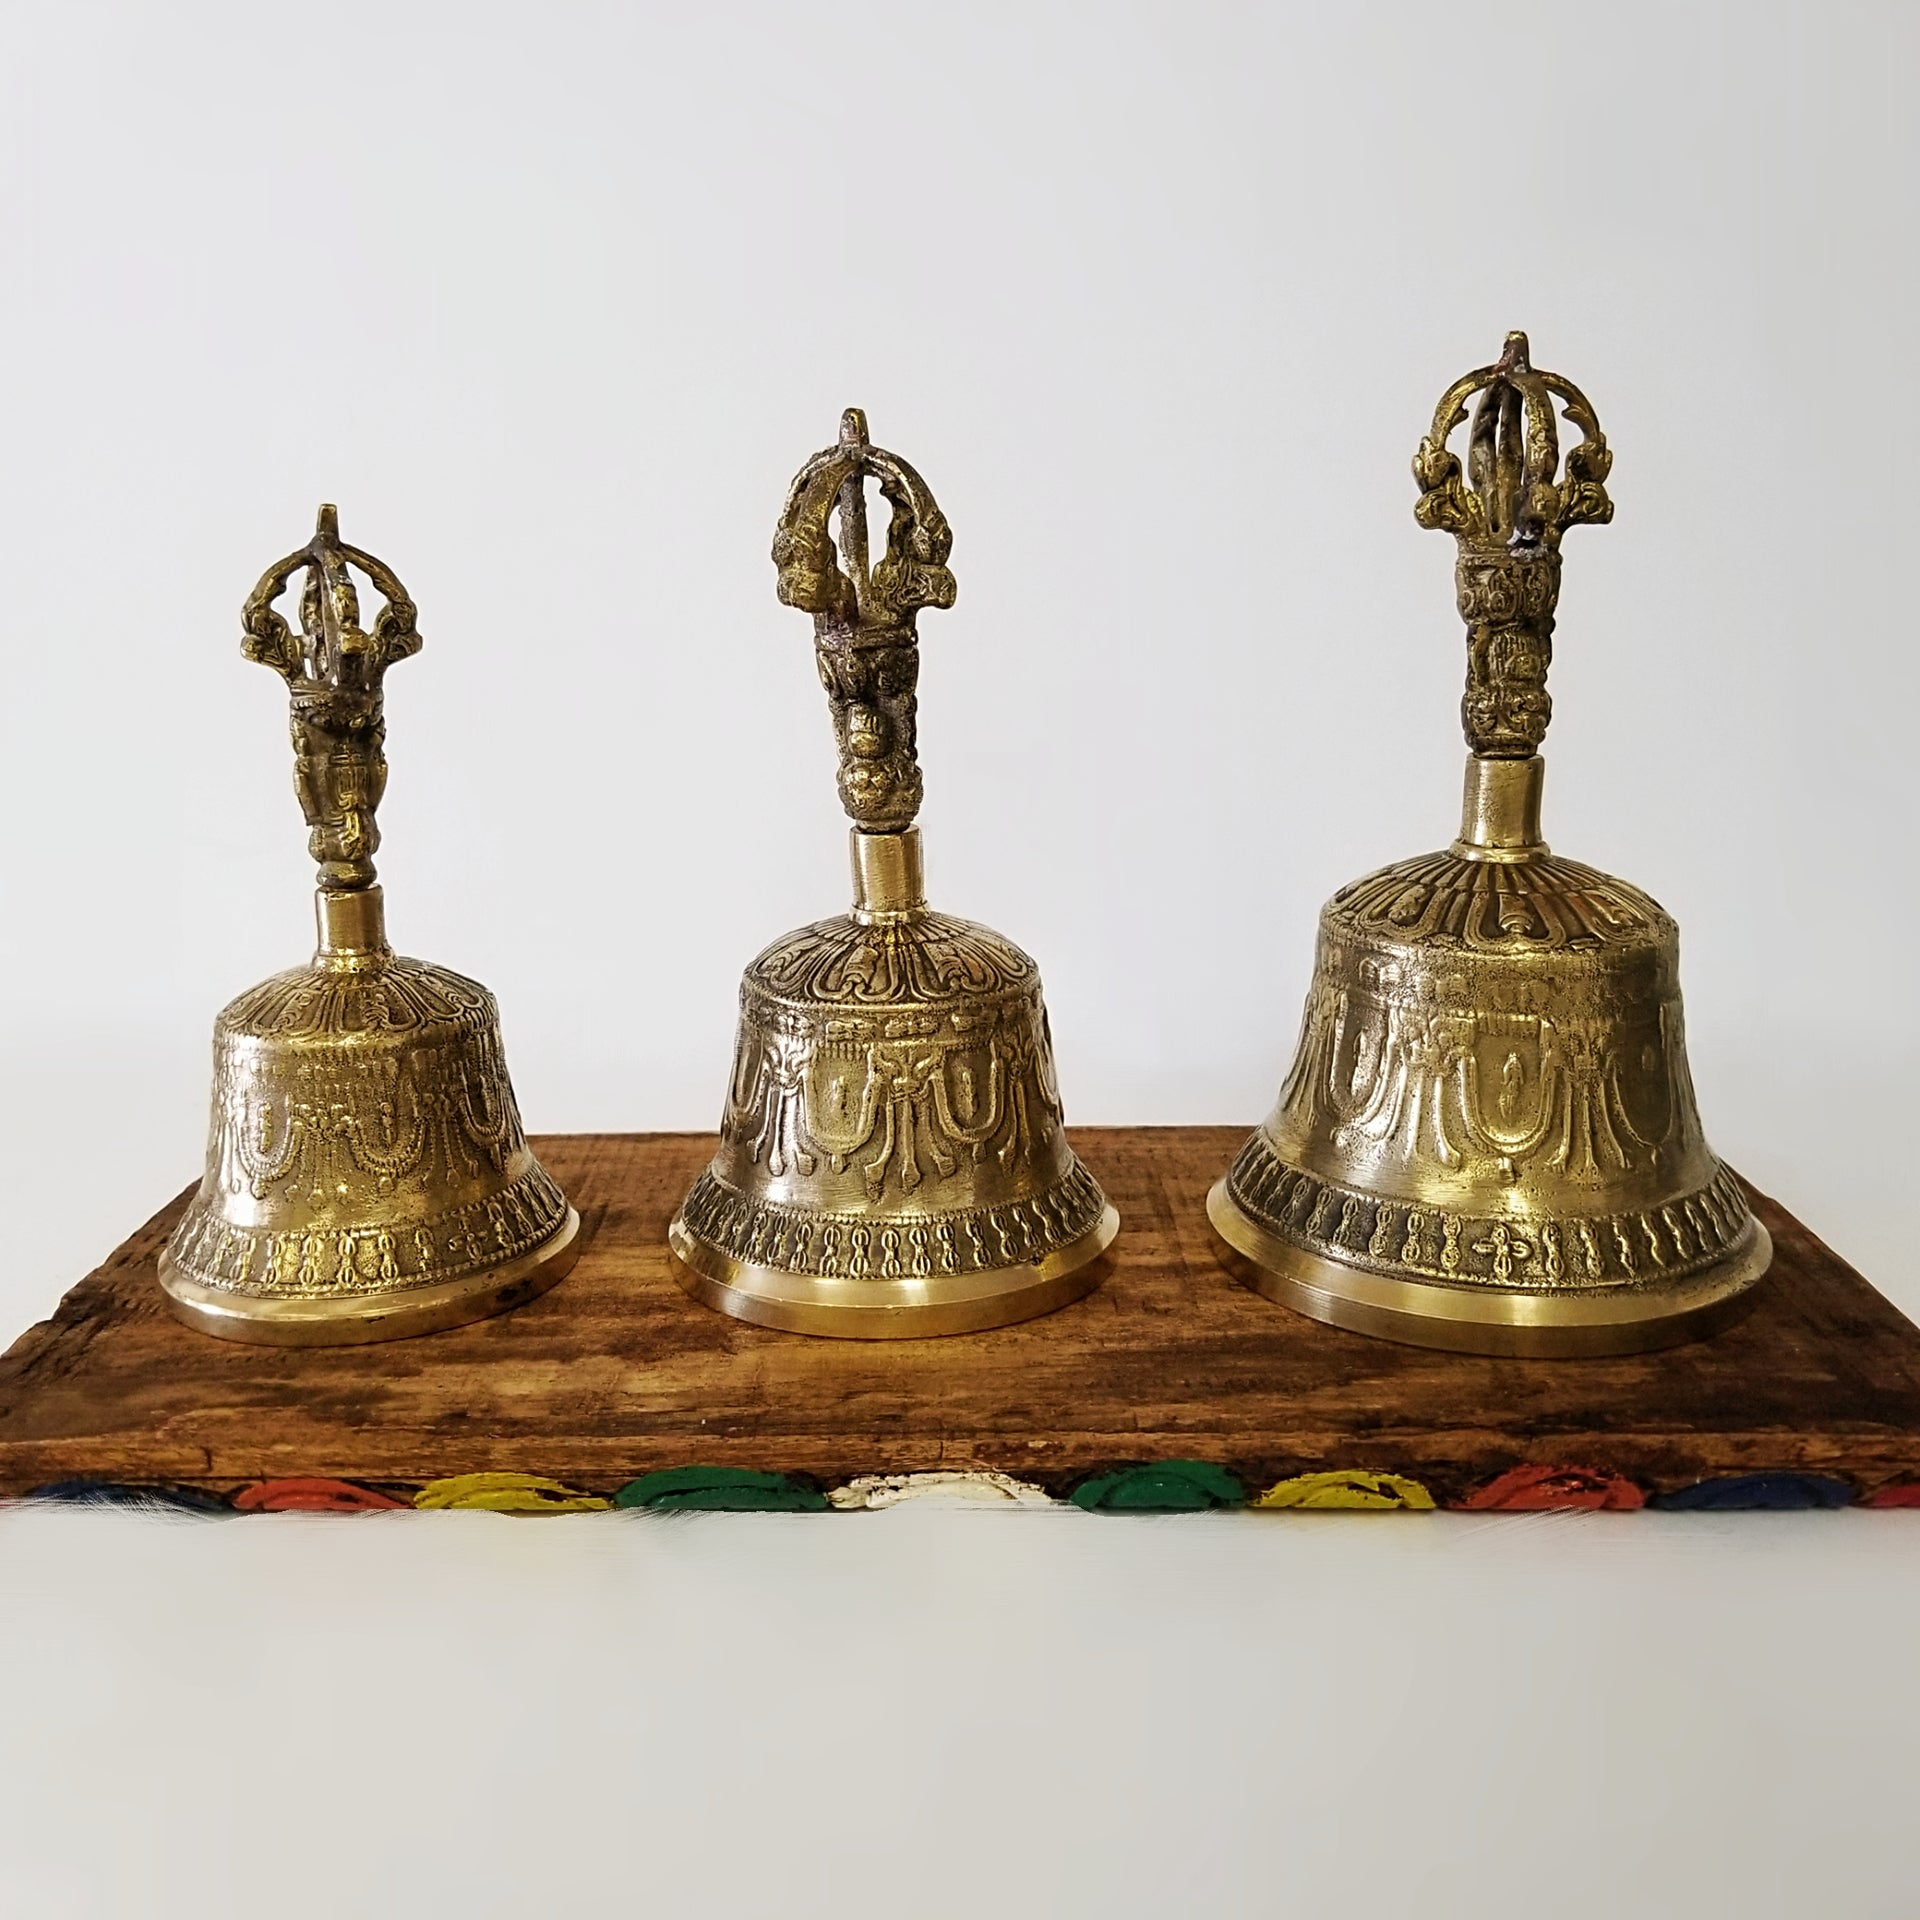 Meditation Tools | Home Decoration | Brass Tibetan Bell Carved